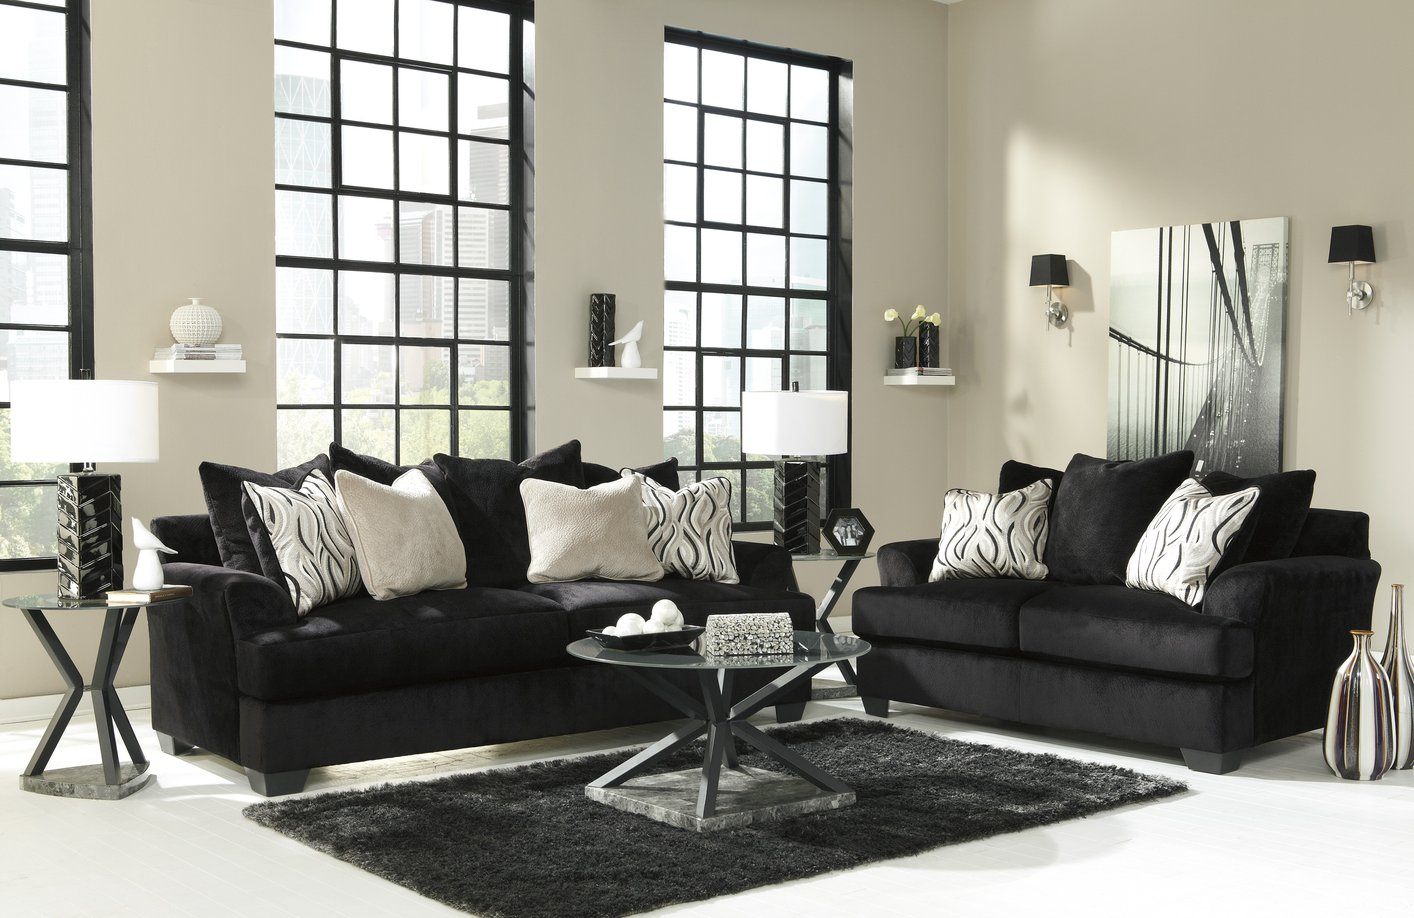 Color your living room with awe and couch loveseat set for for Black living room furniture sets